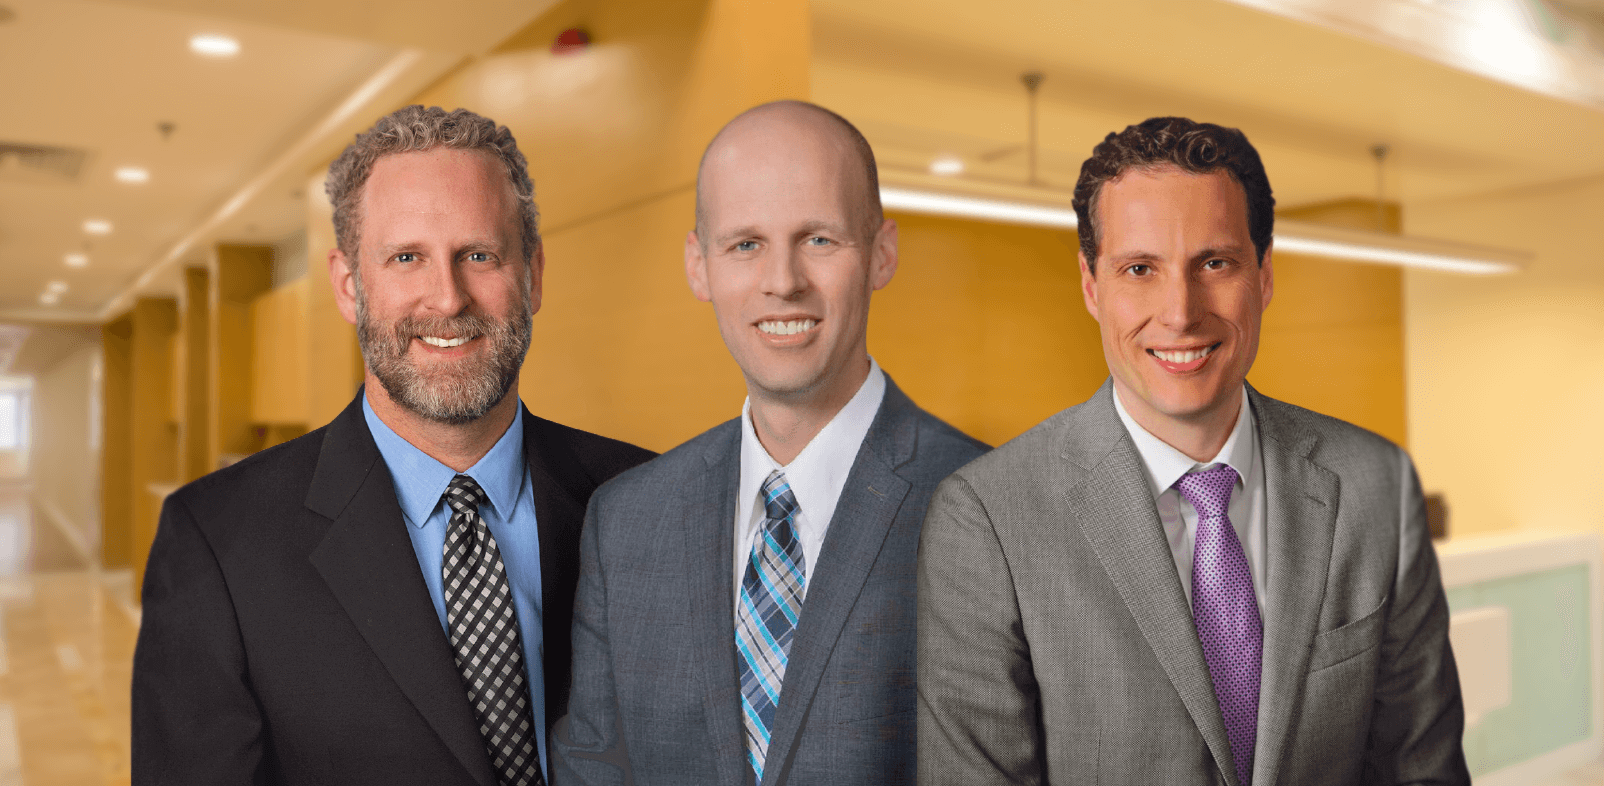 Drs. Andrew Talbott, Eric Freeman, and Bryan Hoelzer at Southwest Spine and Pain - Heber City and Park City